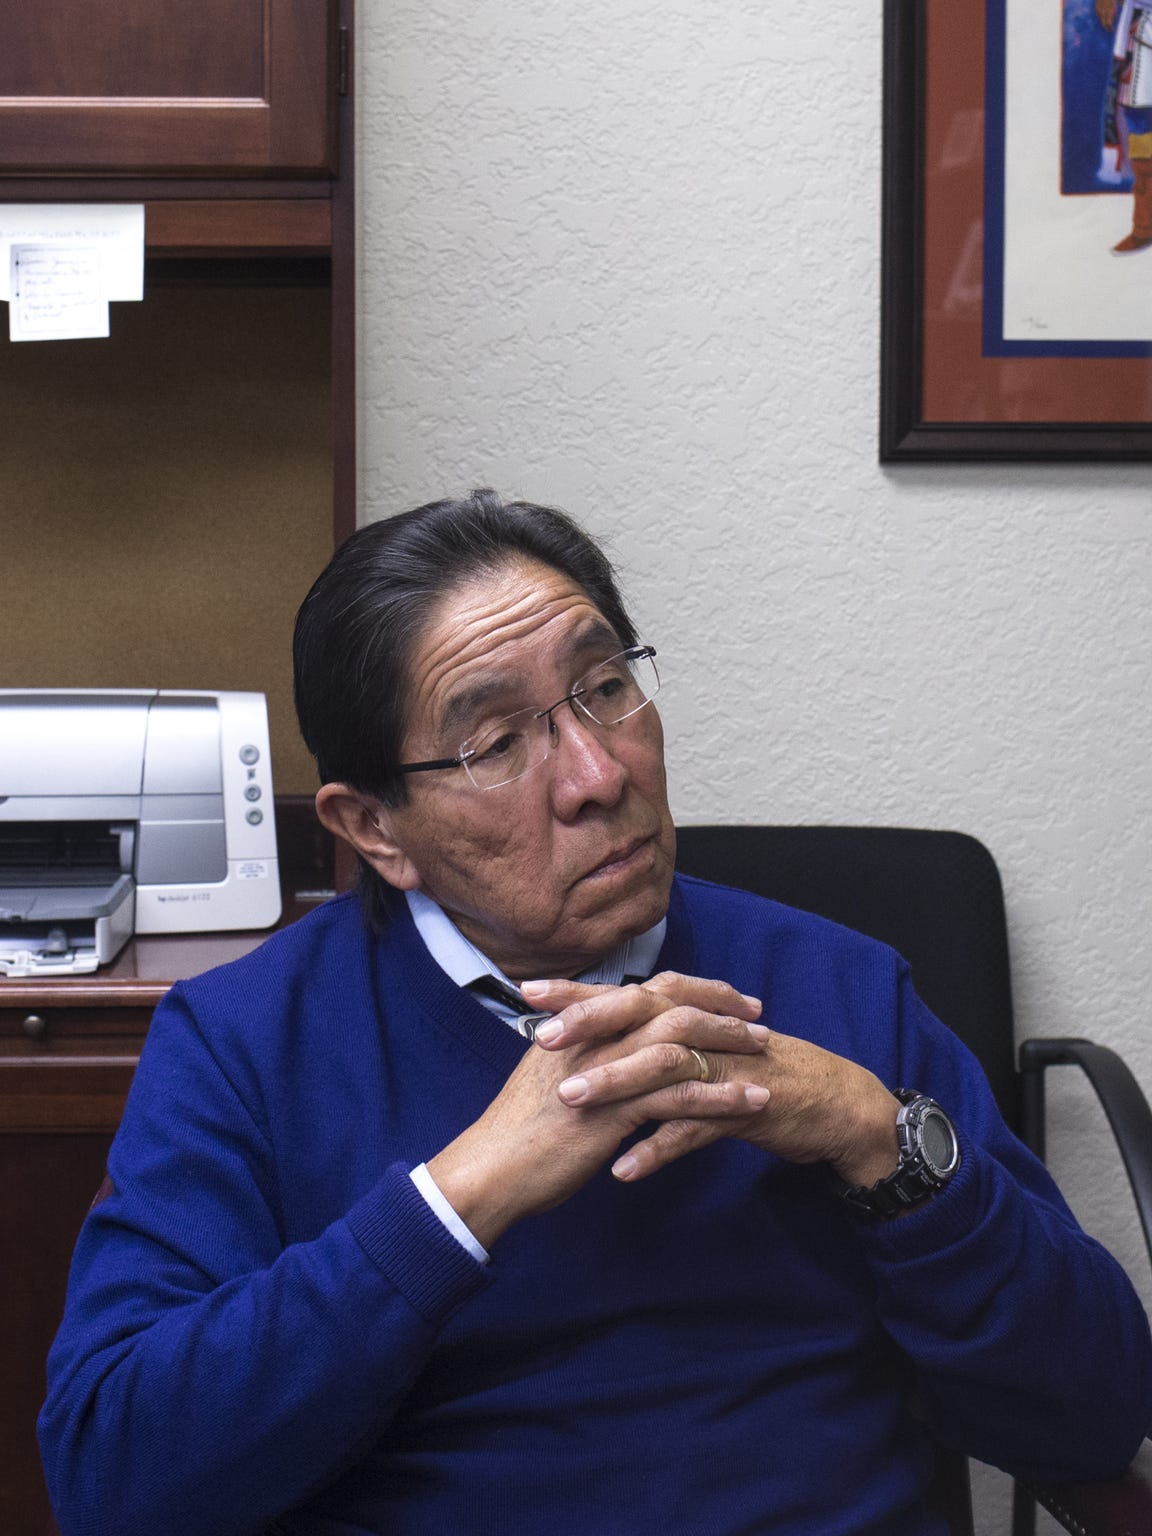 Hopi Tribe Chairman Herman Honanie, in his office on Feb. 3, 2017, says half the tribe wants the mine closed because of environmental concerns, and half want to keep it open. Honanie has worked for tribal government since 1977.